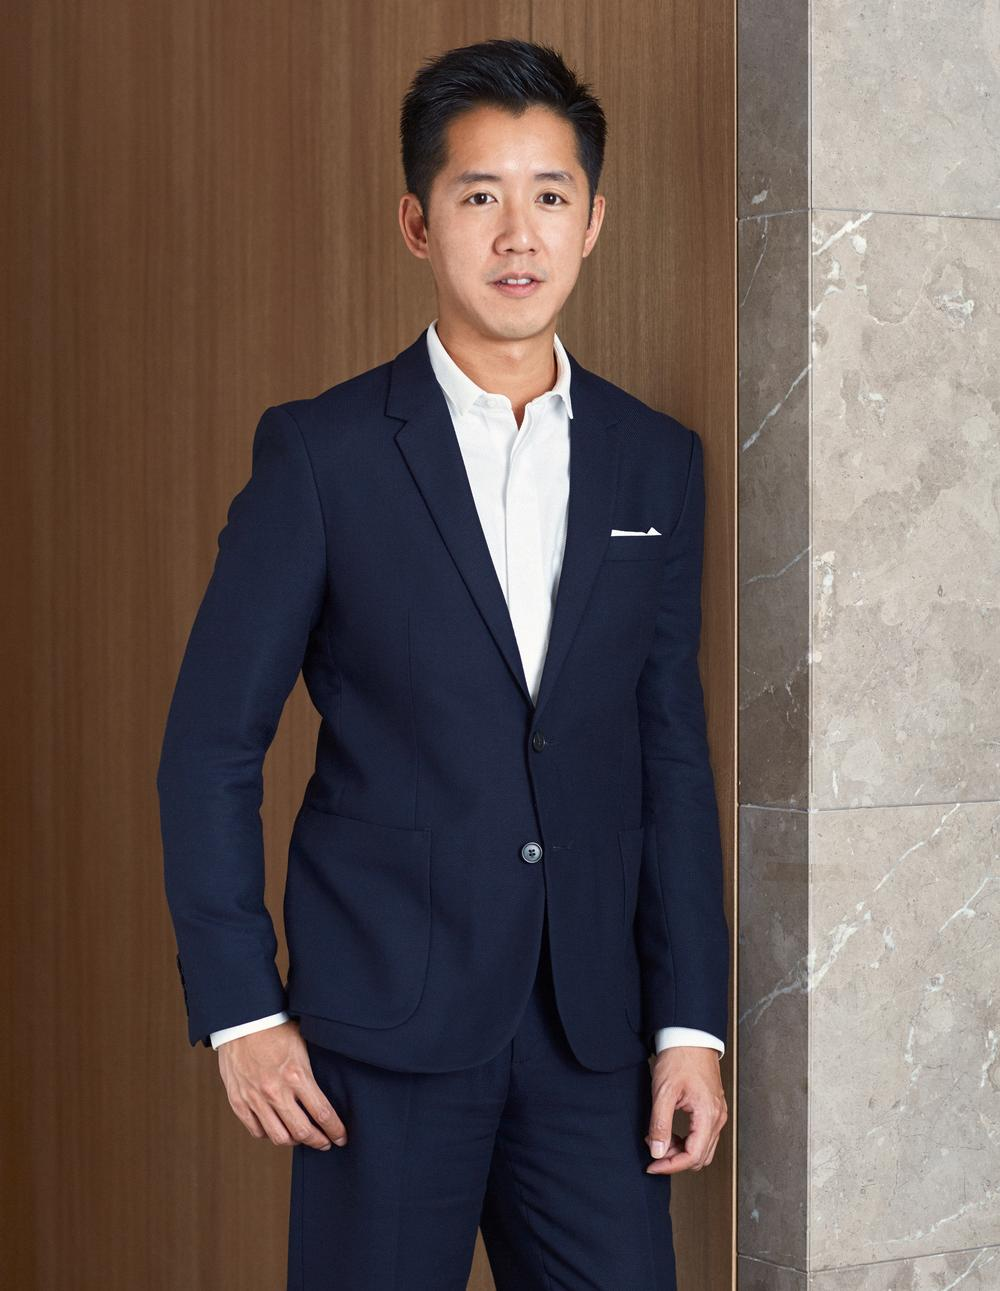 Fu studied at the University of Cambridge in the UK. He set up his practice in 2000